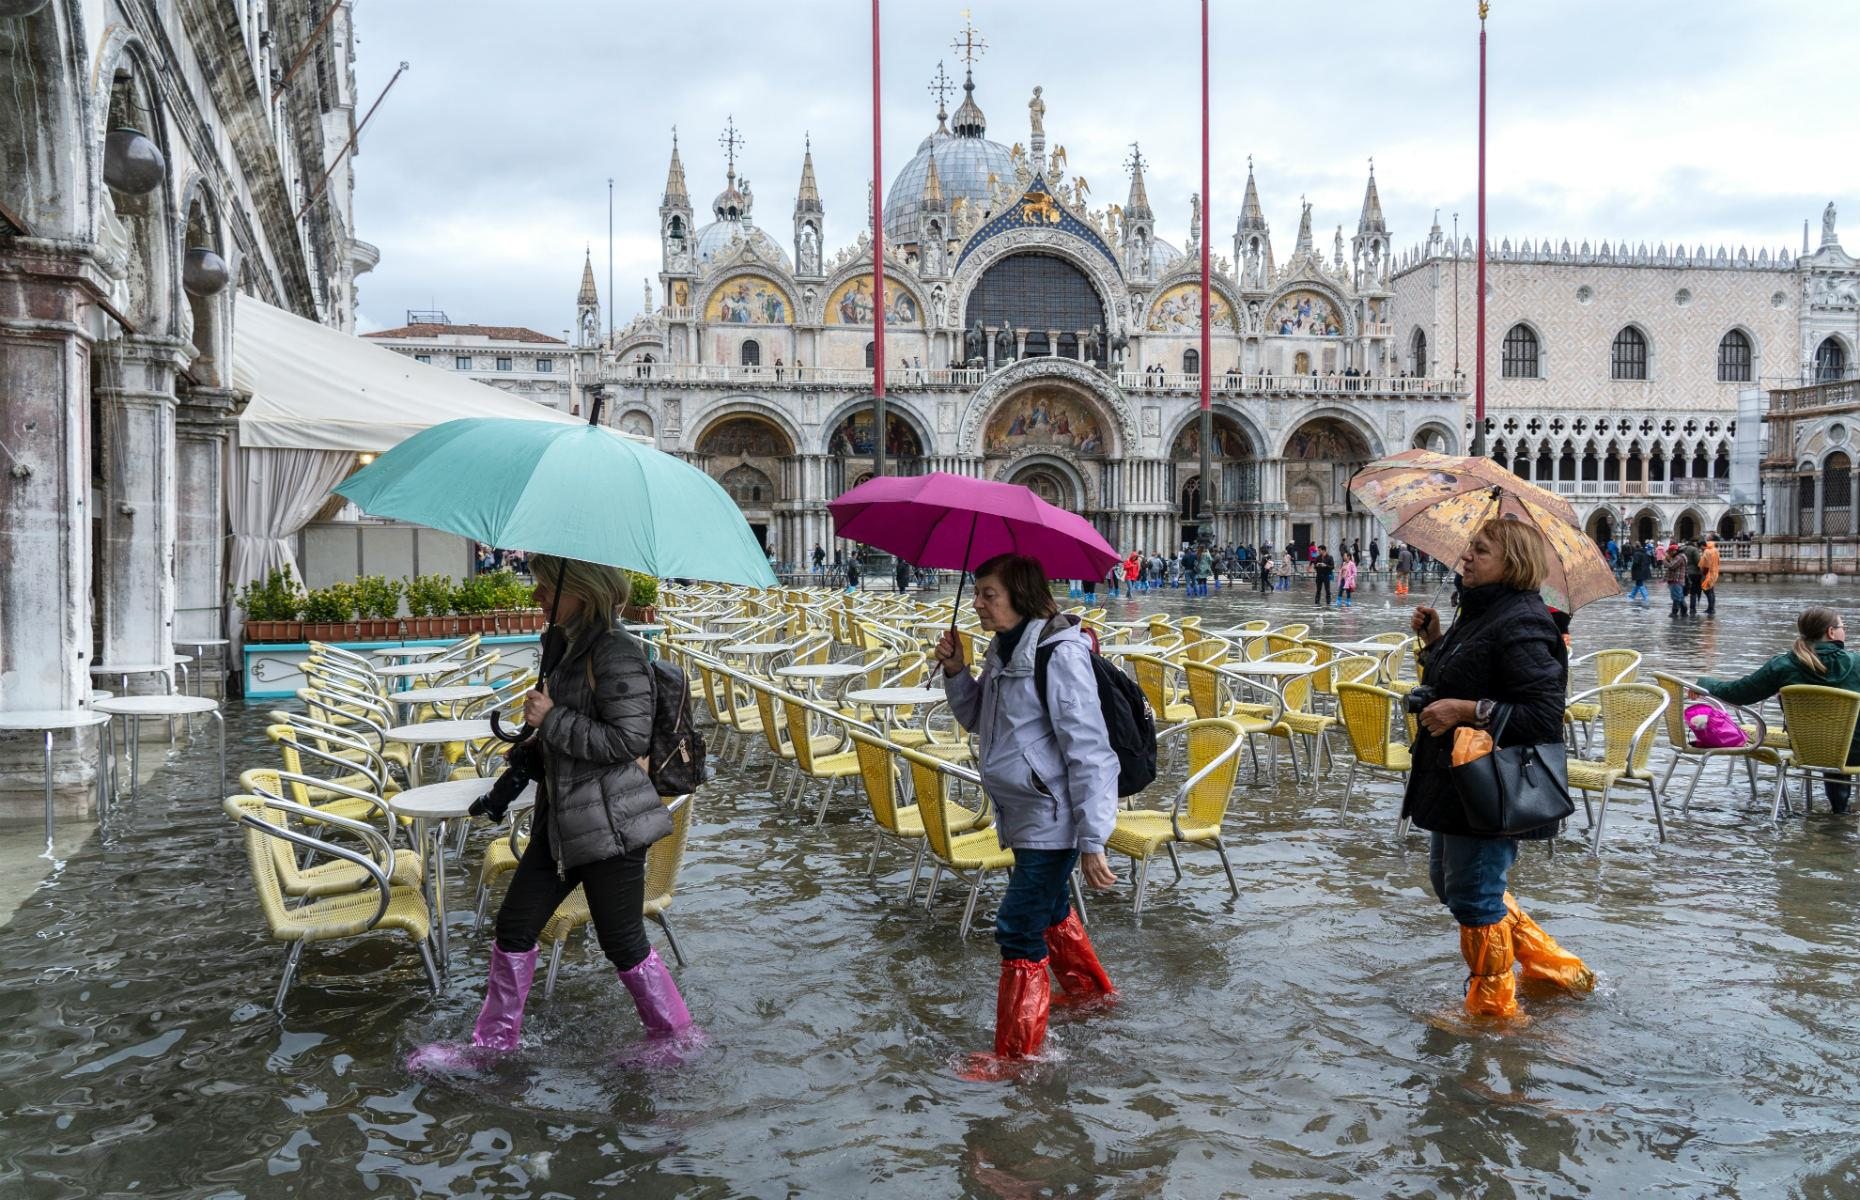 Slide 33 of 37: Most recently, in November2019, Venice experienced its worst flooding for over half a century, as water levels reached 6.1 feet (1.8m)at its peak, causing 80% of the city to flood. St Mark's Square (pictured) was off-limits, as residents and tourists waded through the streets,schools closed for a number of days and the government declared astate of emergency. High tides, worsened by sirocco winds blowing from Africa, caused damage to homes, monuments and killed two people.